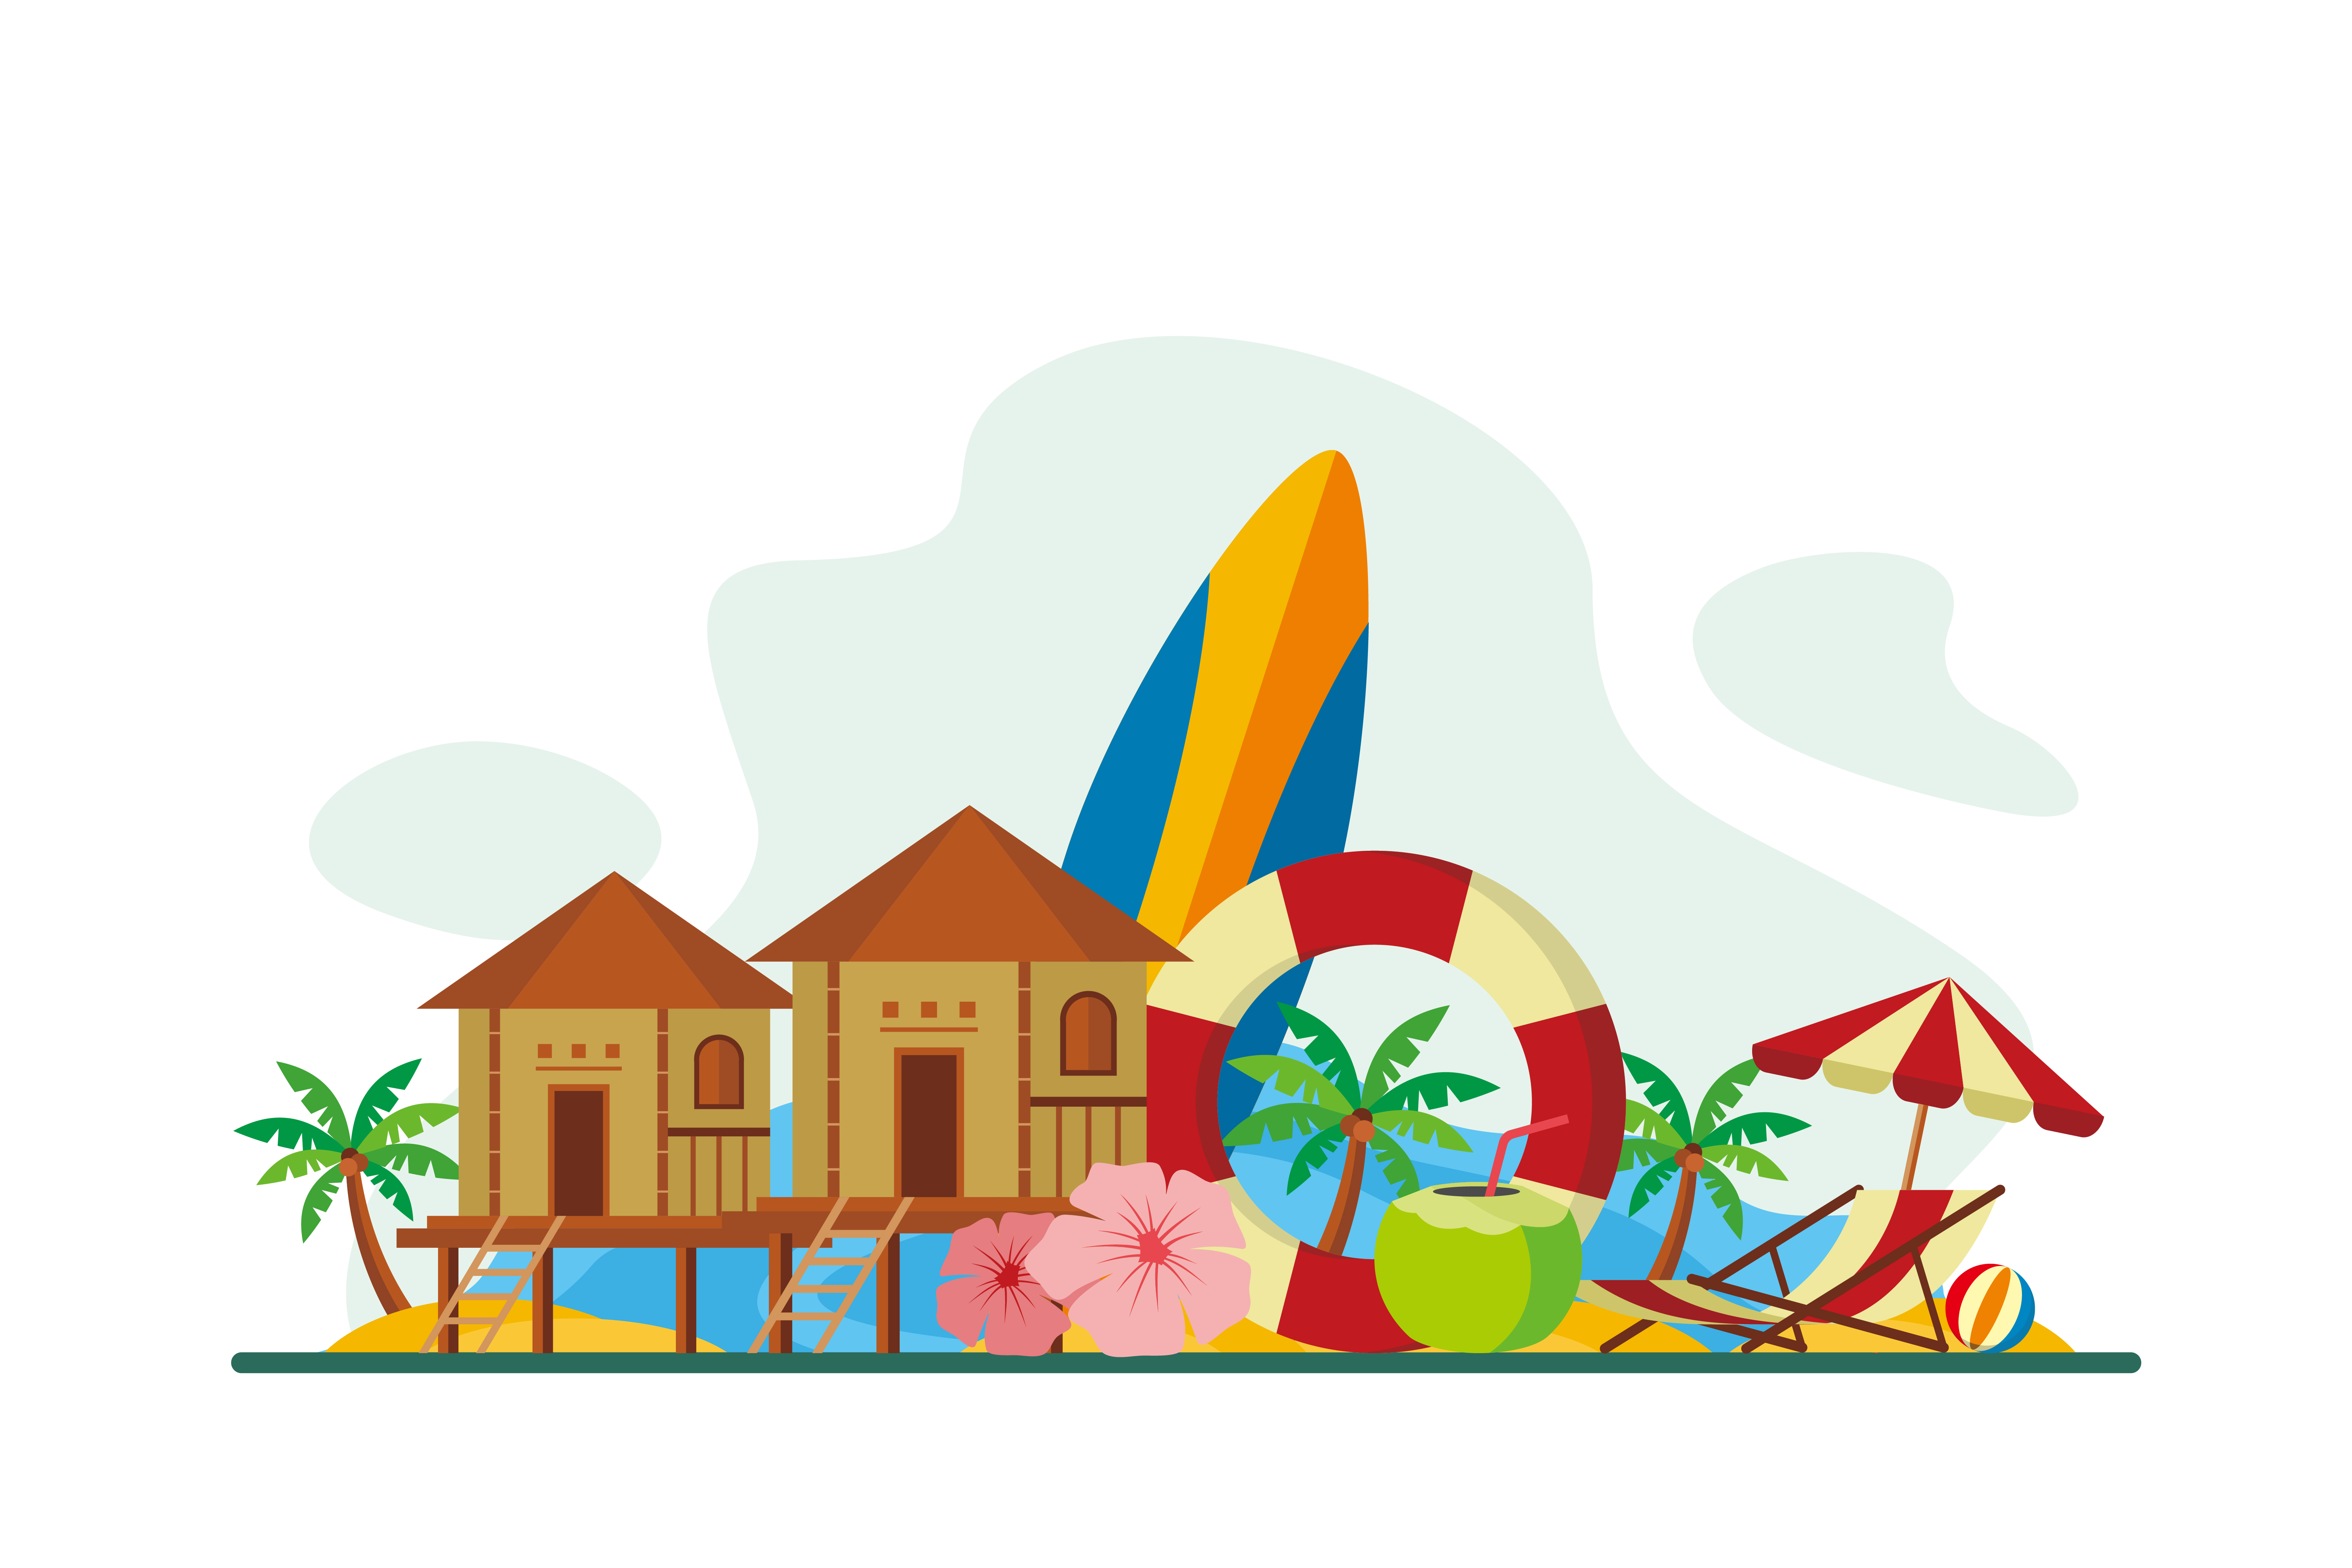 Download Free Maldives Flat Design Illustration Graphic By Chocolartestudio for Cricut Explore, Silhouette and other cutting machines.